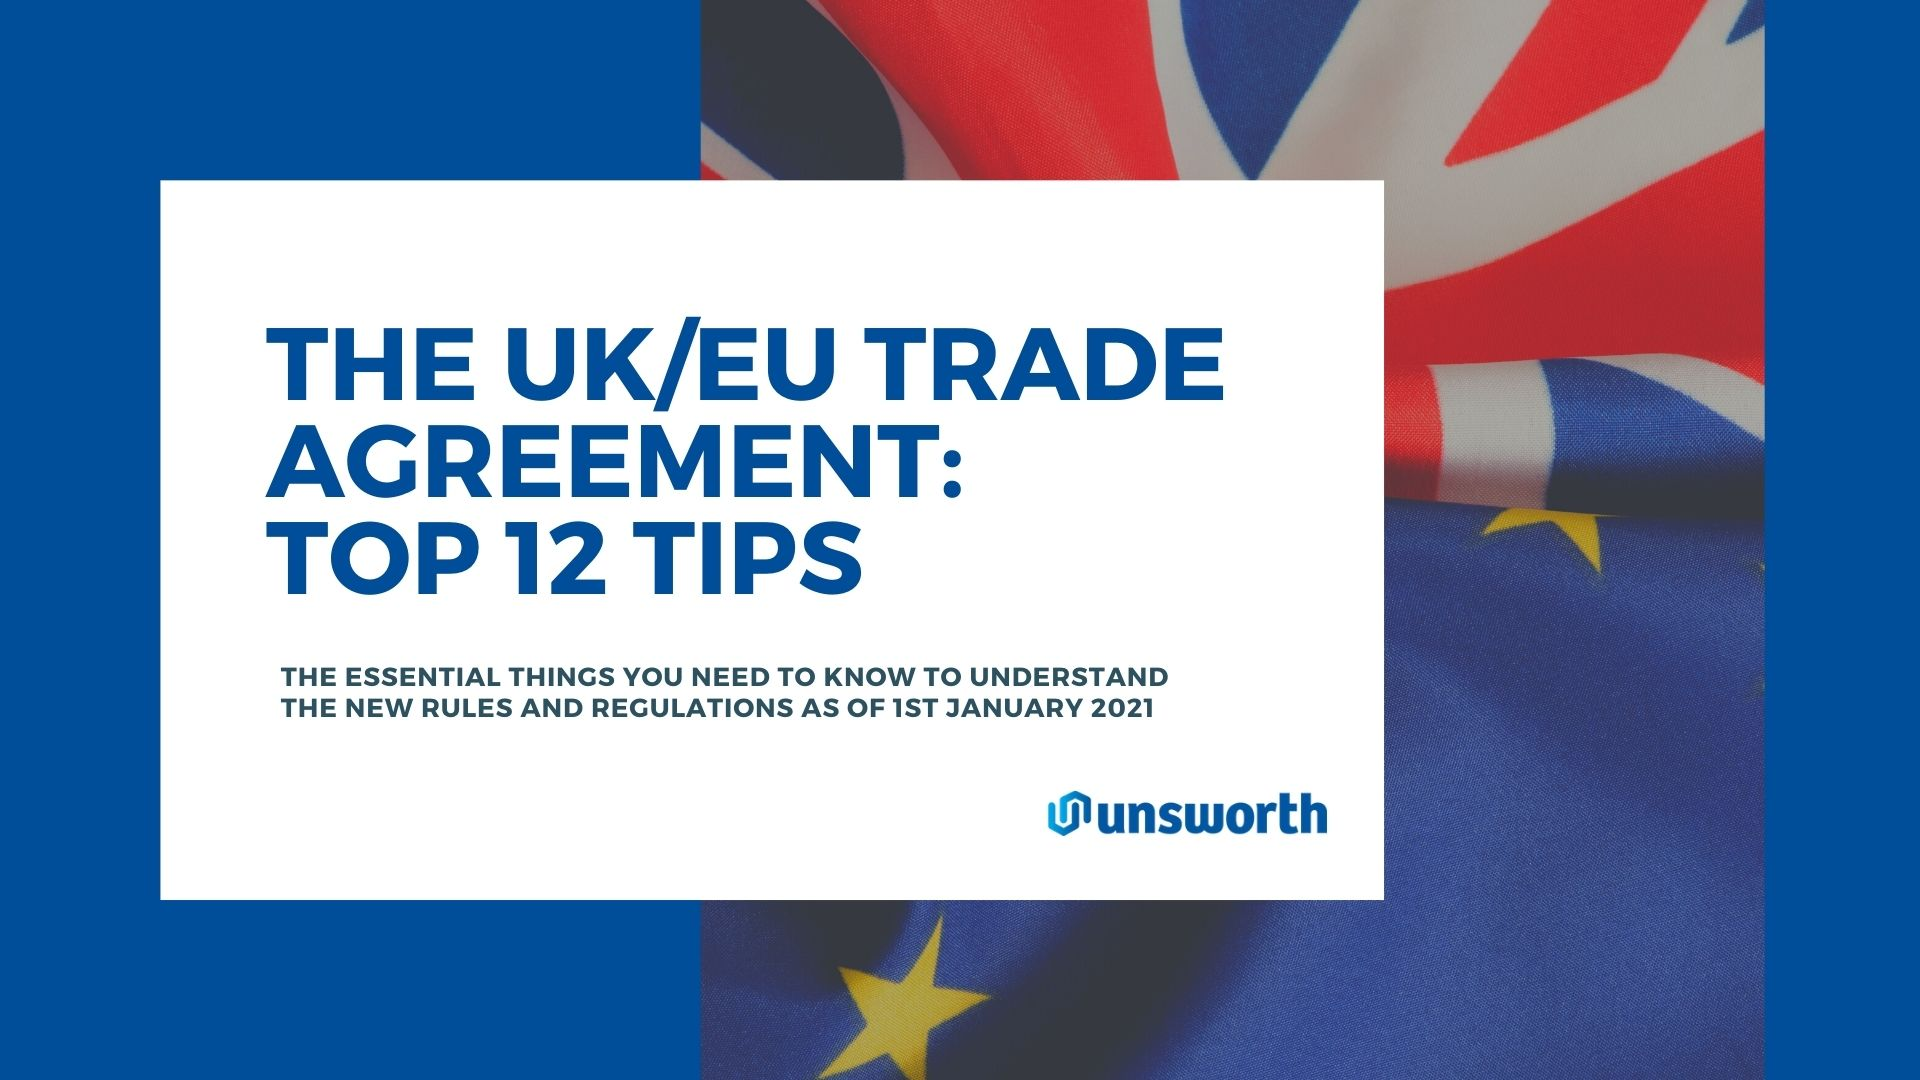 The UK/EU Trade Agreement: Top 12 Tips | Whitepaper | Unsworth